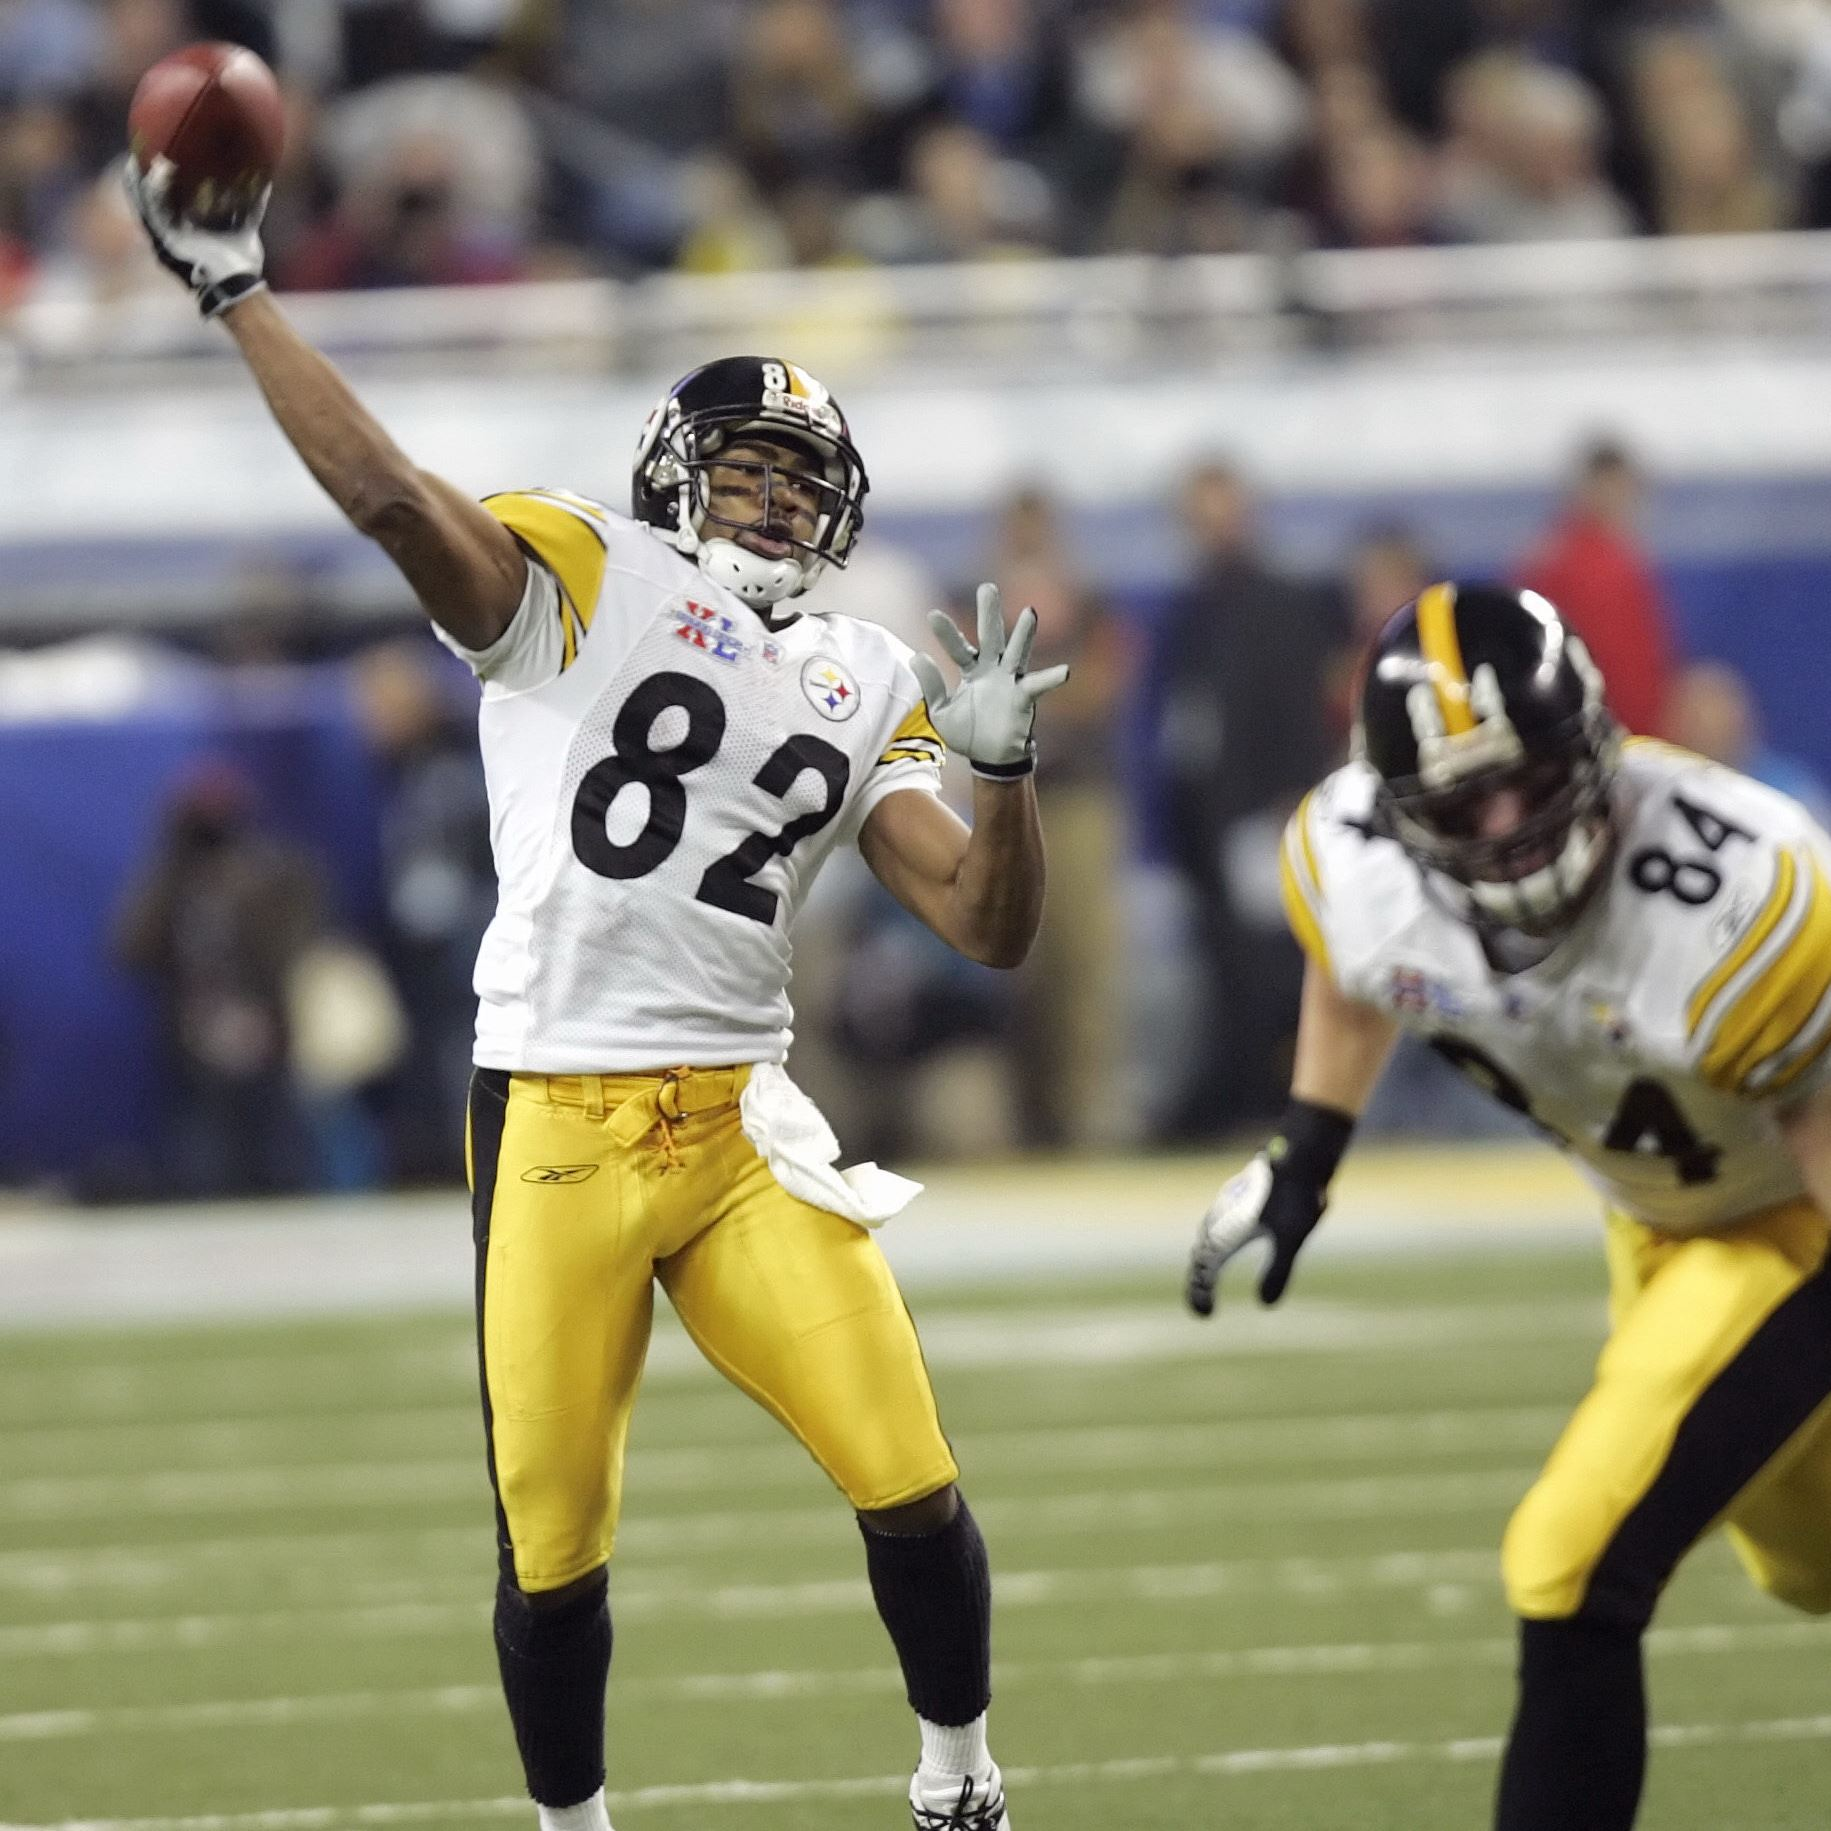 Former Steelers receiver Antwaan Randle El: 'If I could go back, I wouldn't [play football]'